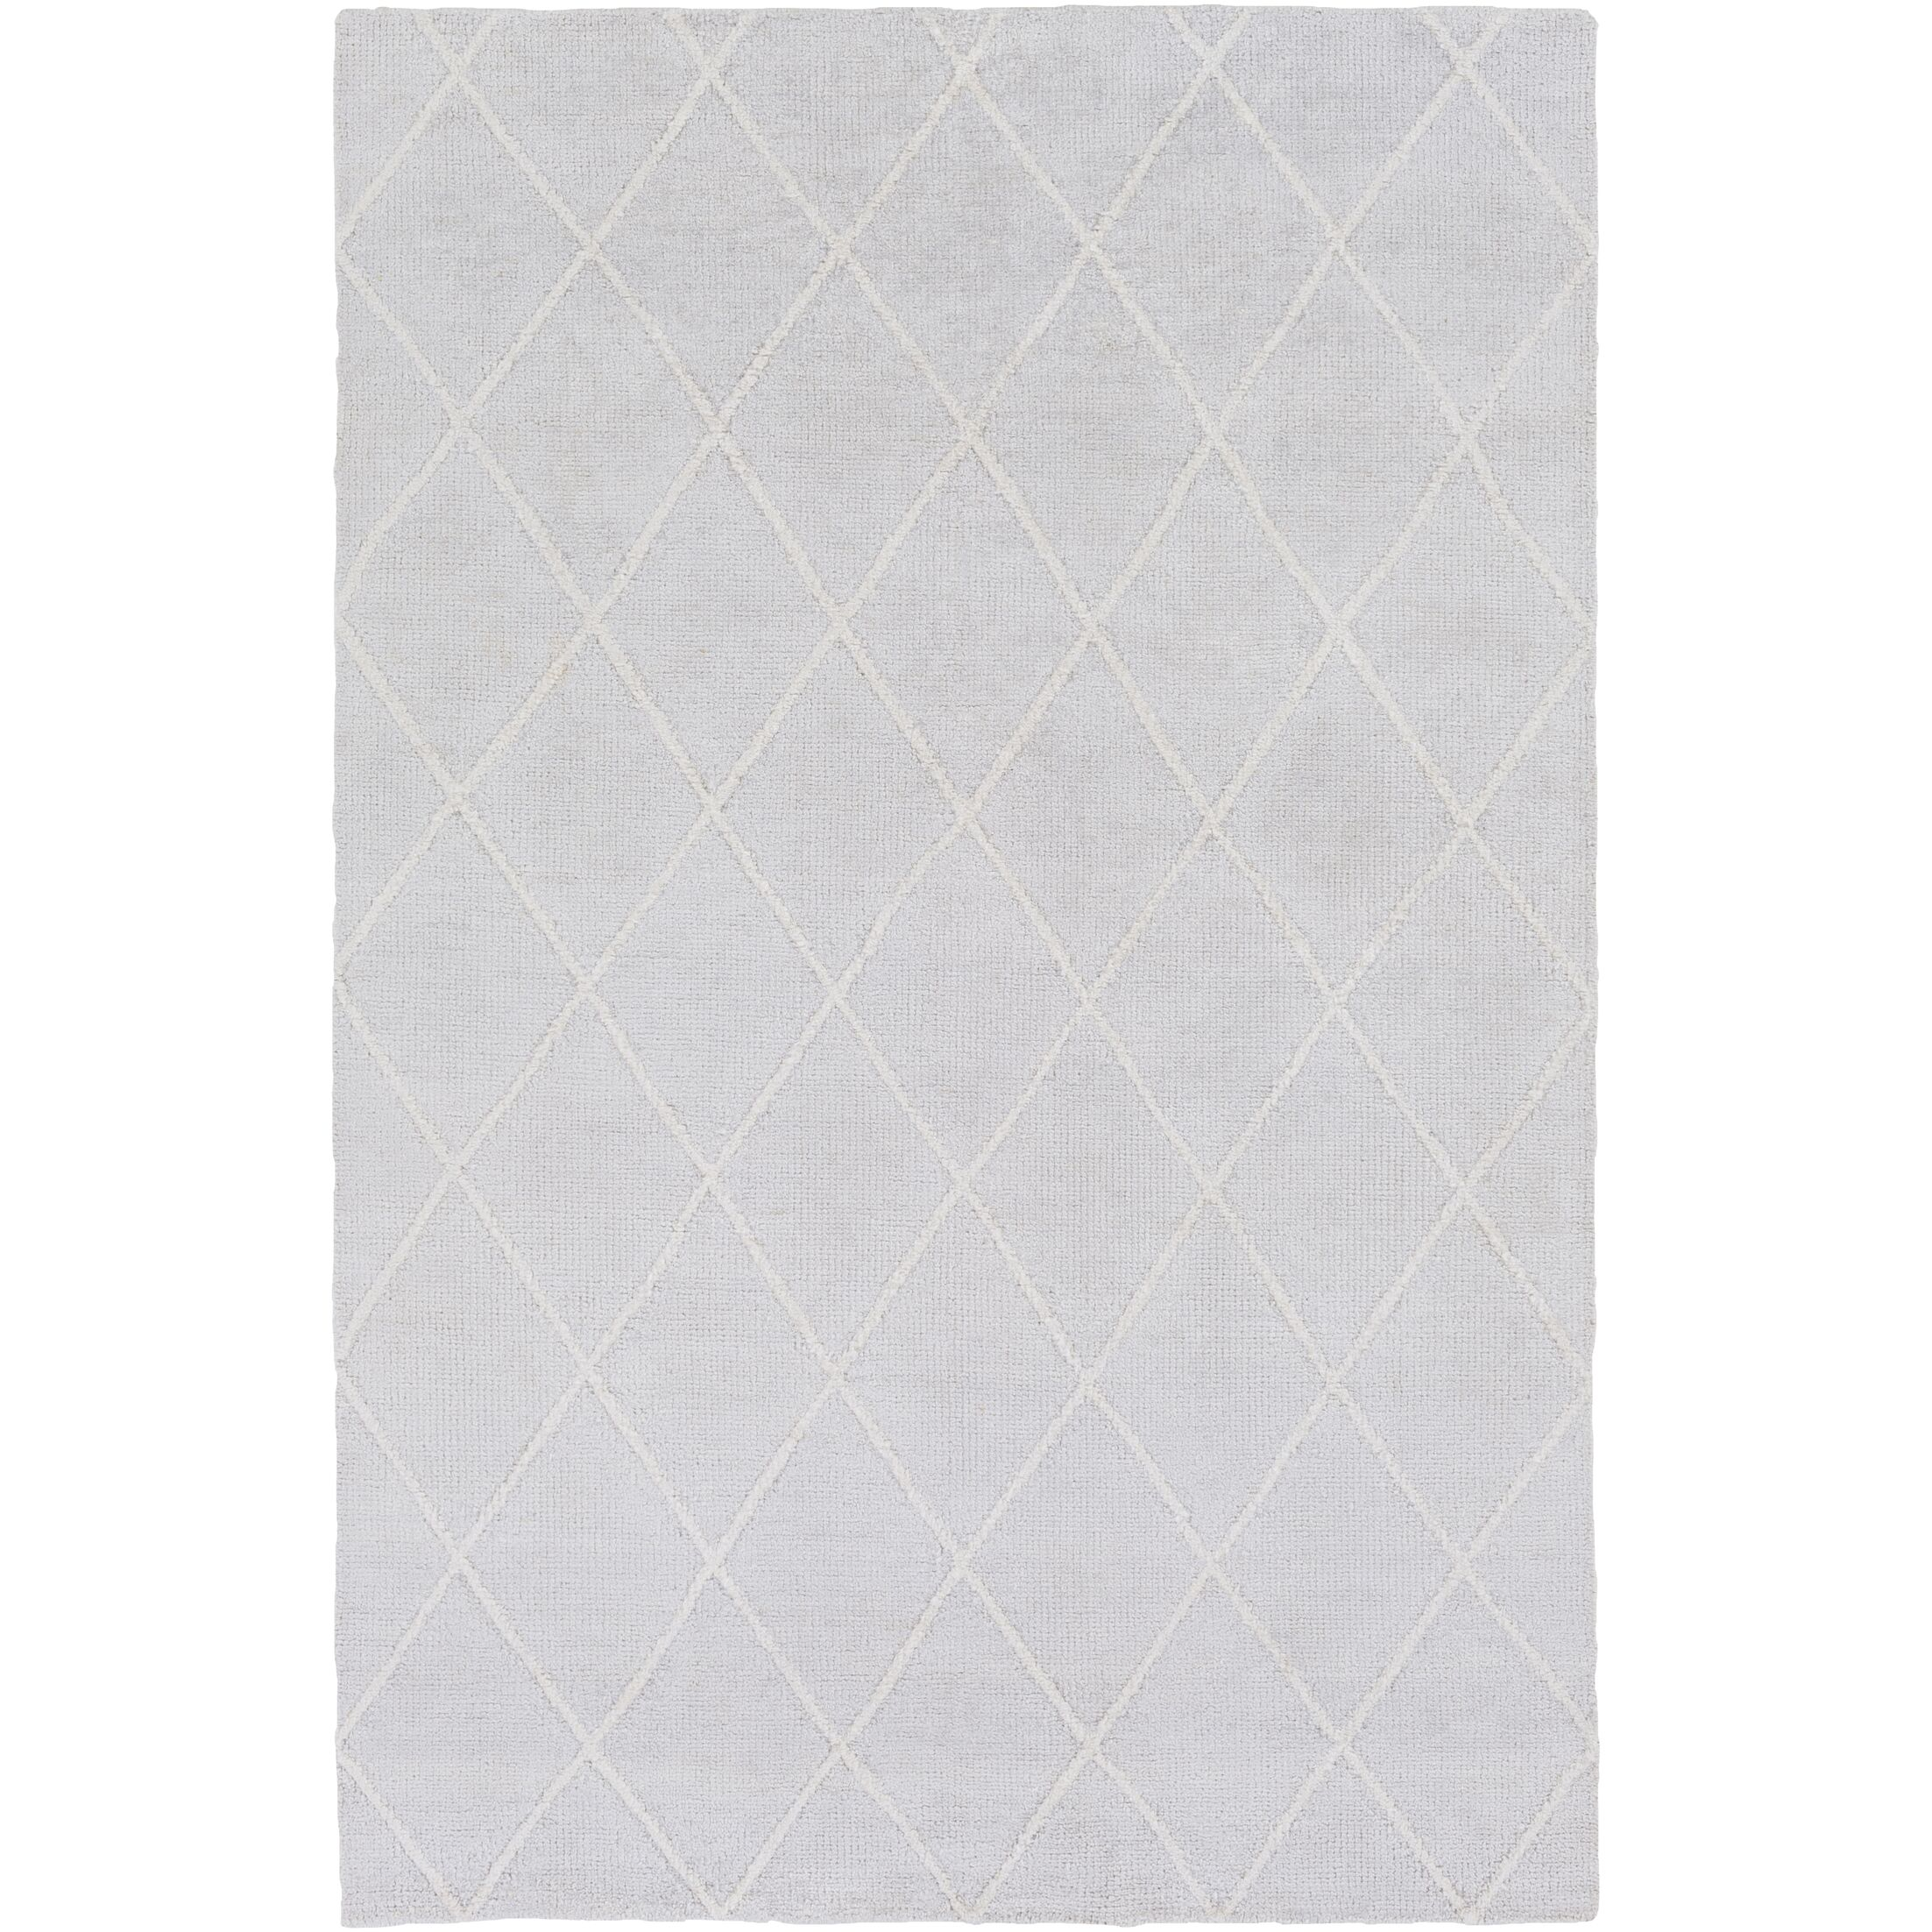 Parkstone Hand-Knotted Light Gray/Ivory Area Rug Rug Size: Rectangle 9' x 13'